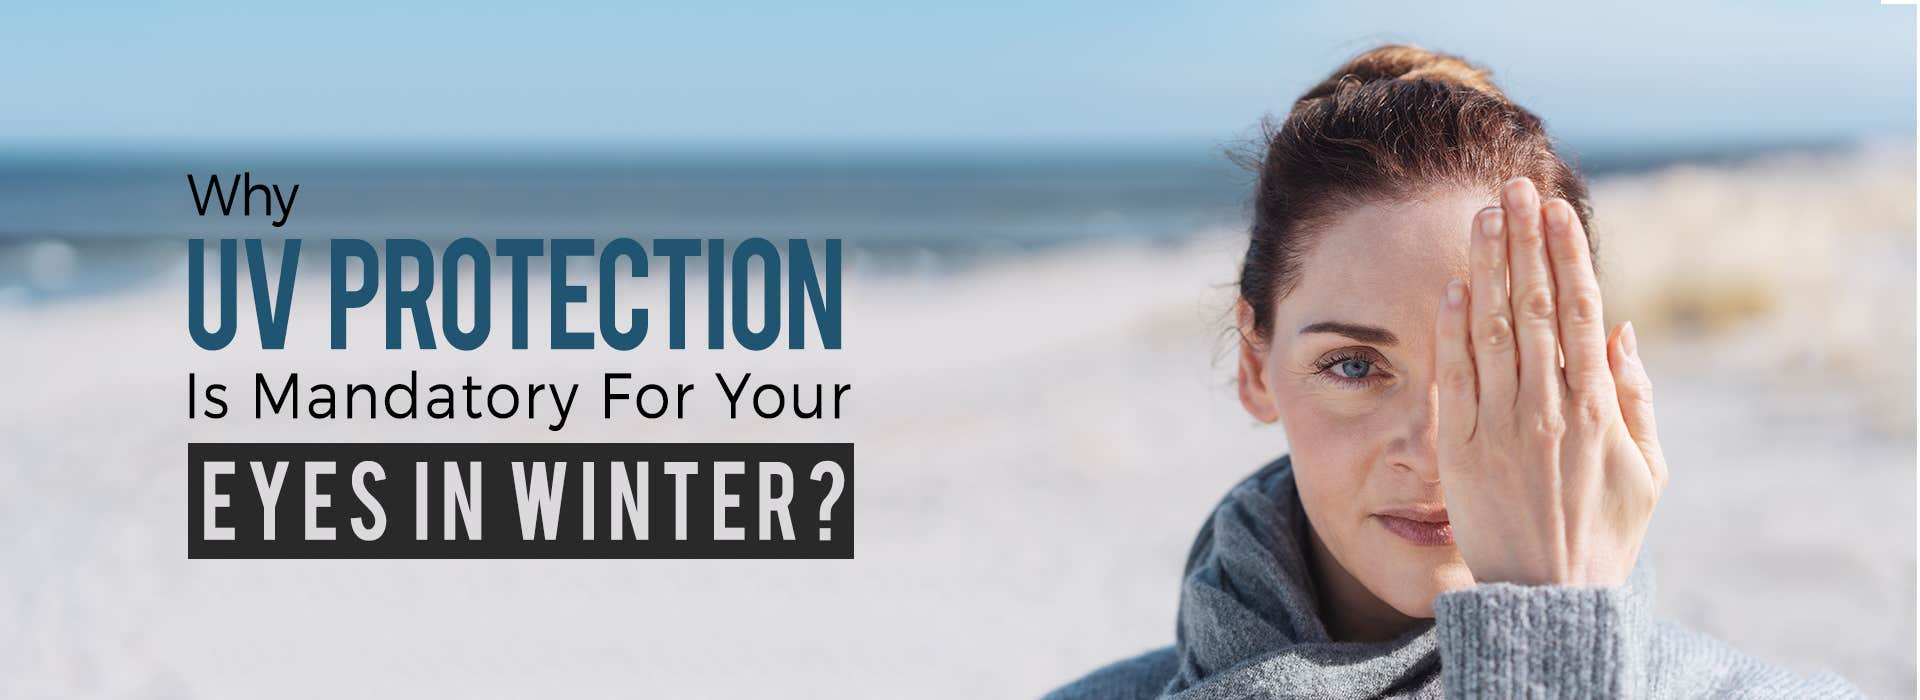 Why UV Protection Is Mandatory For Your Eyes In Winter?